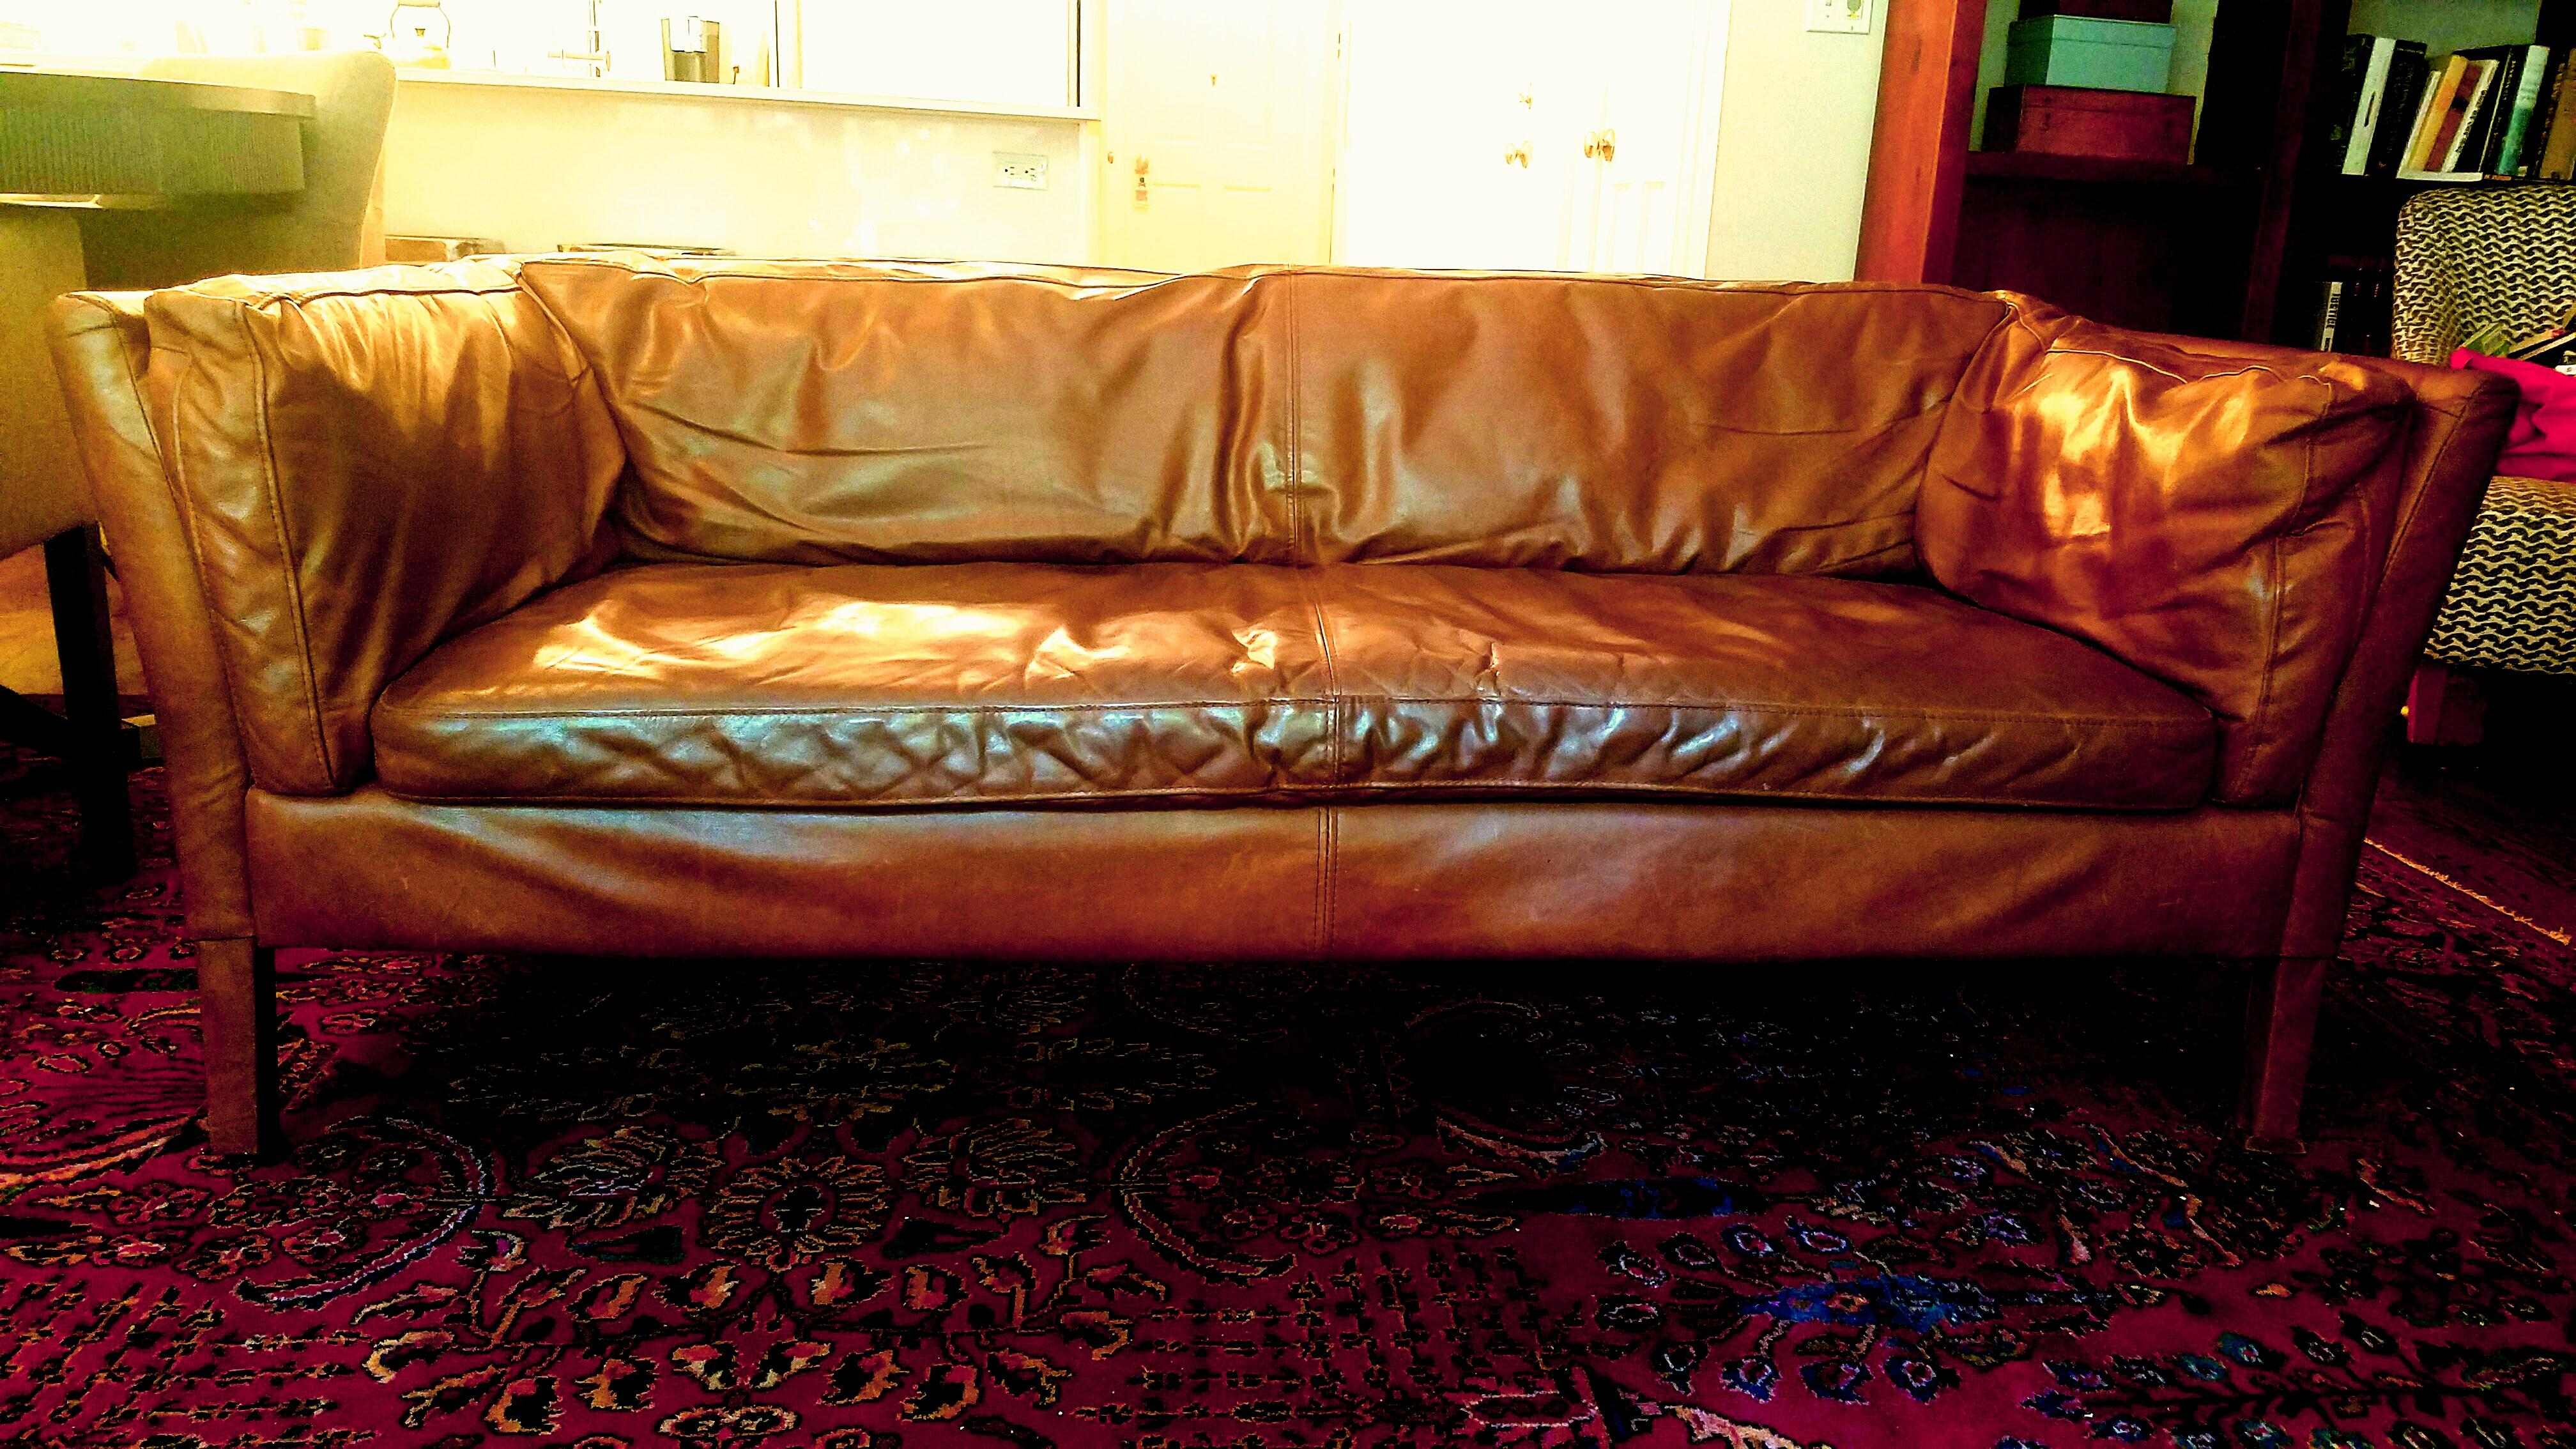 We Bought This Wanscher Style Sofa From Restoration Hardware Last Year, And  We Love